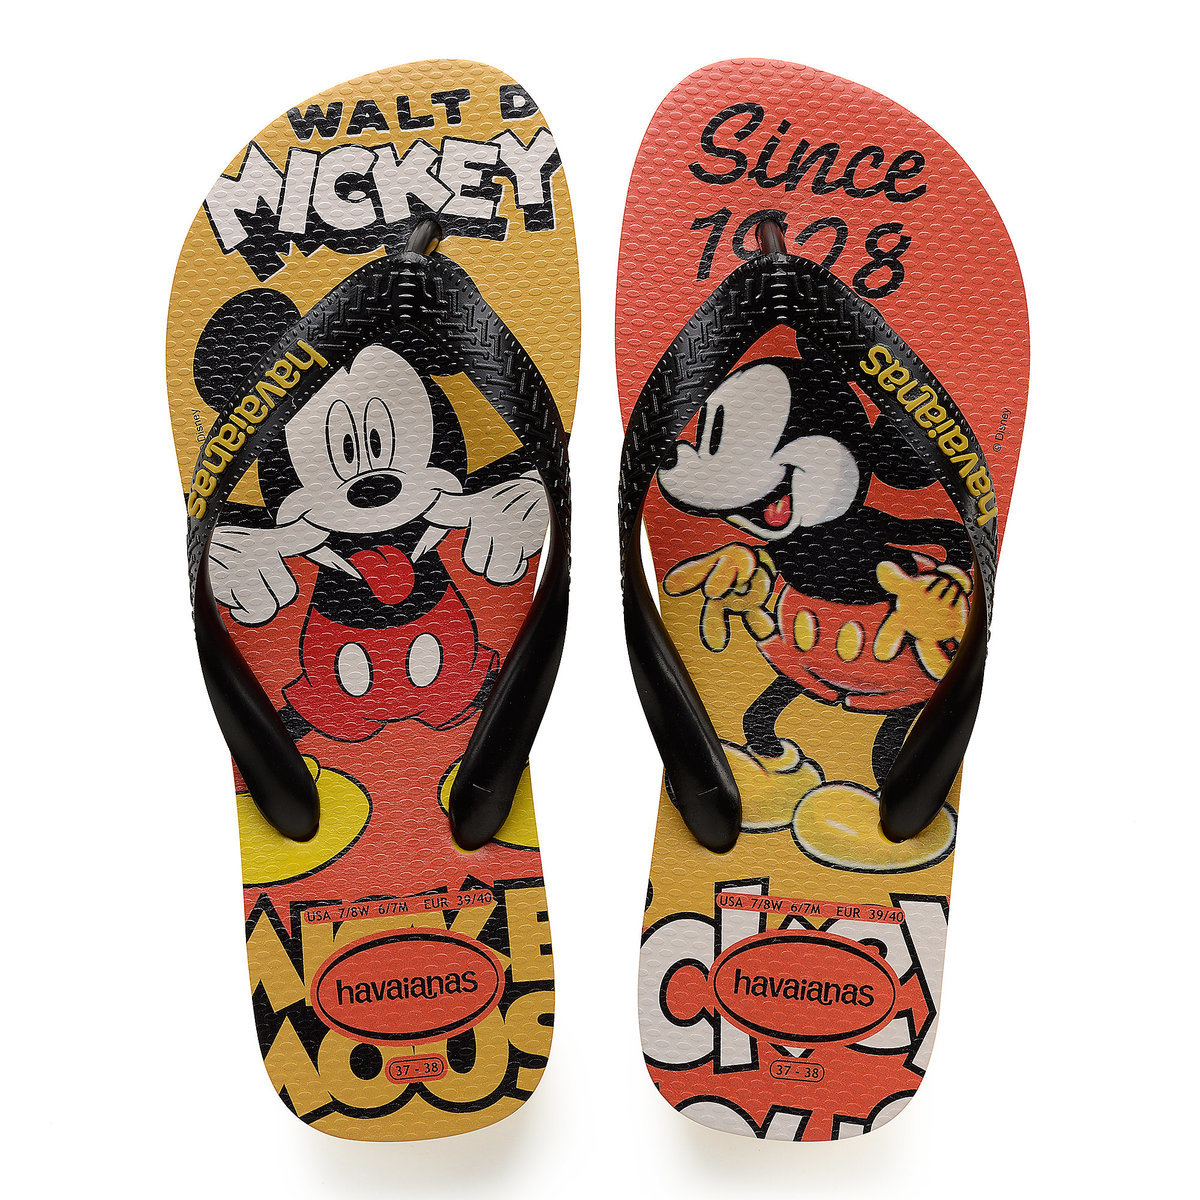 9dc1da4f5 Product Image of Mickey Mouse Flip Flops for Men by Havaianas   1